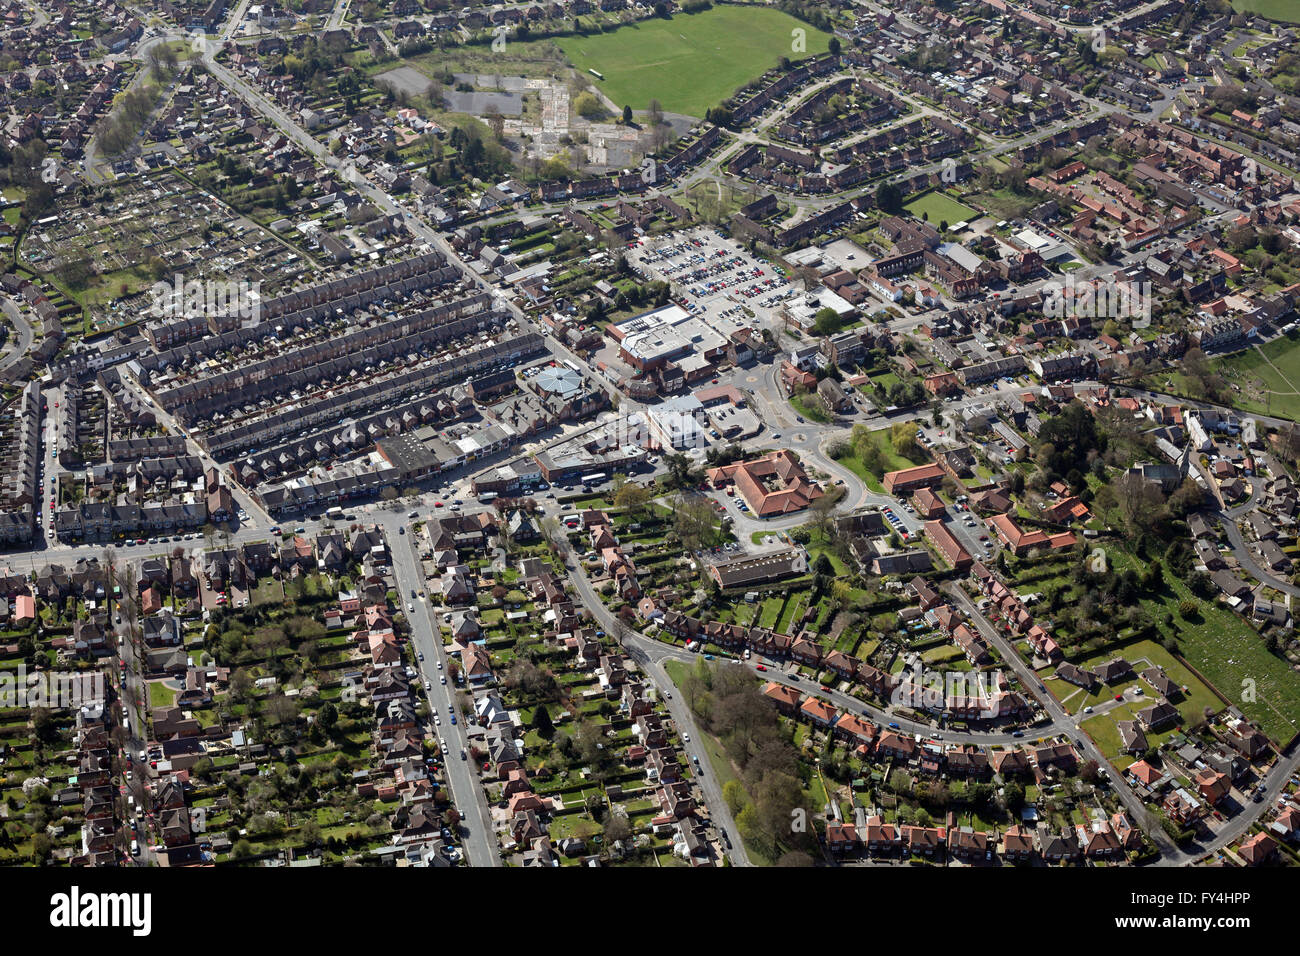 aerial view of the York suburb of Acomb, Yorkshire, UK - Stock Image